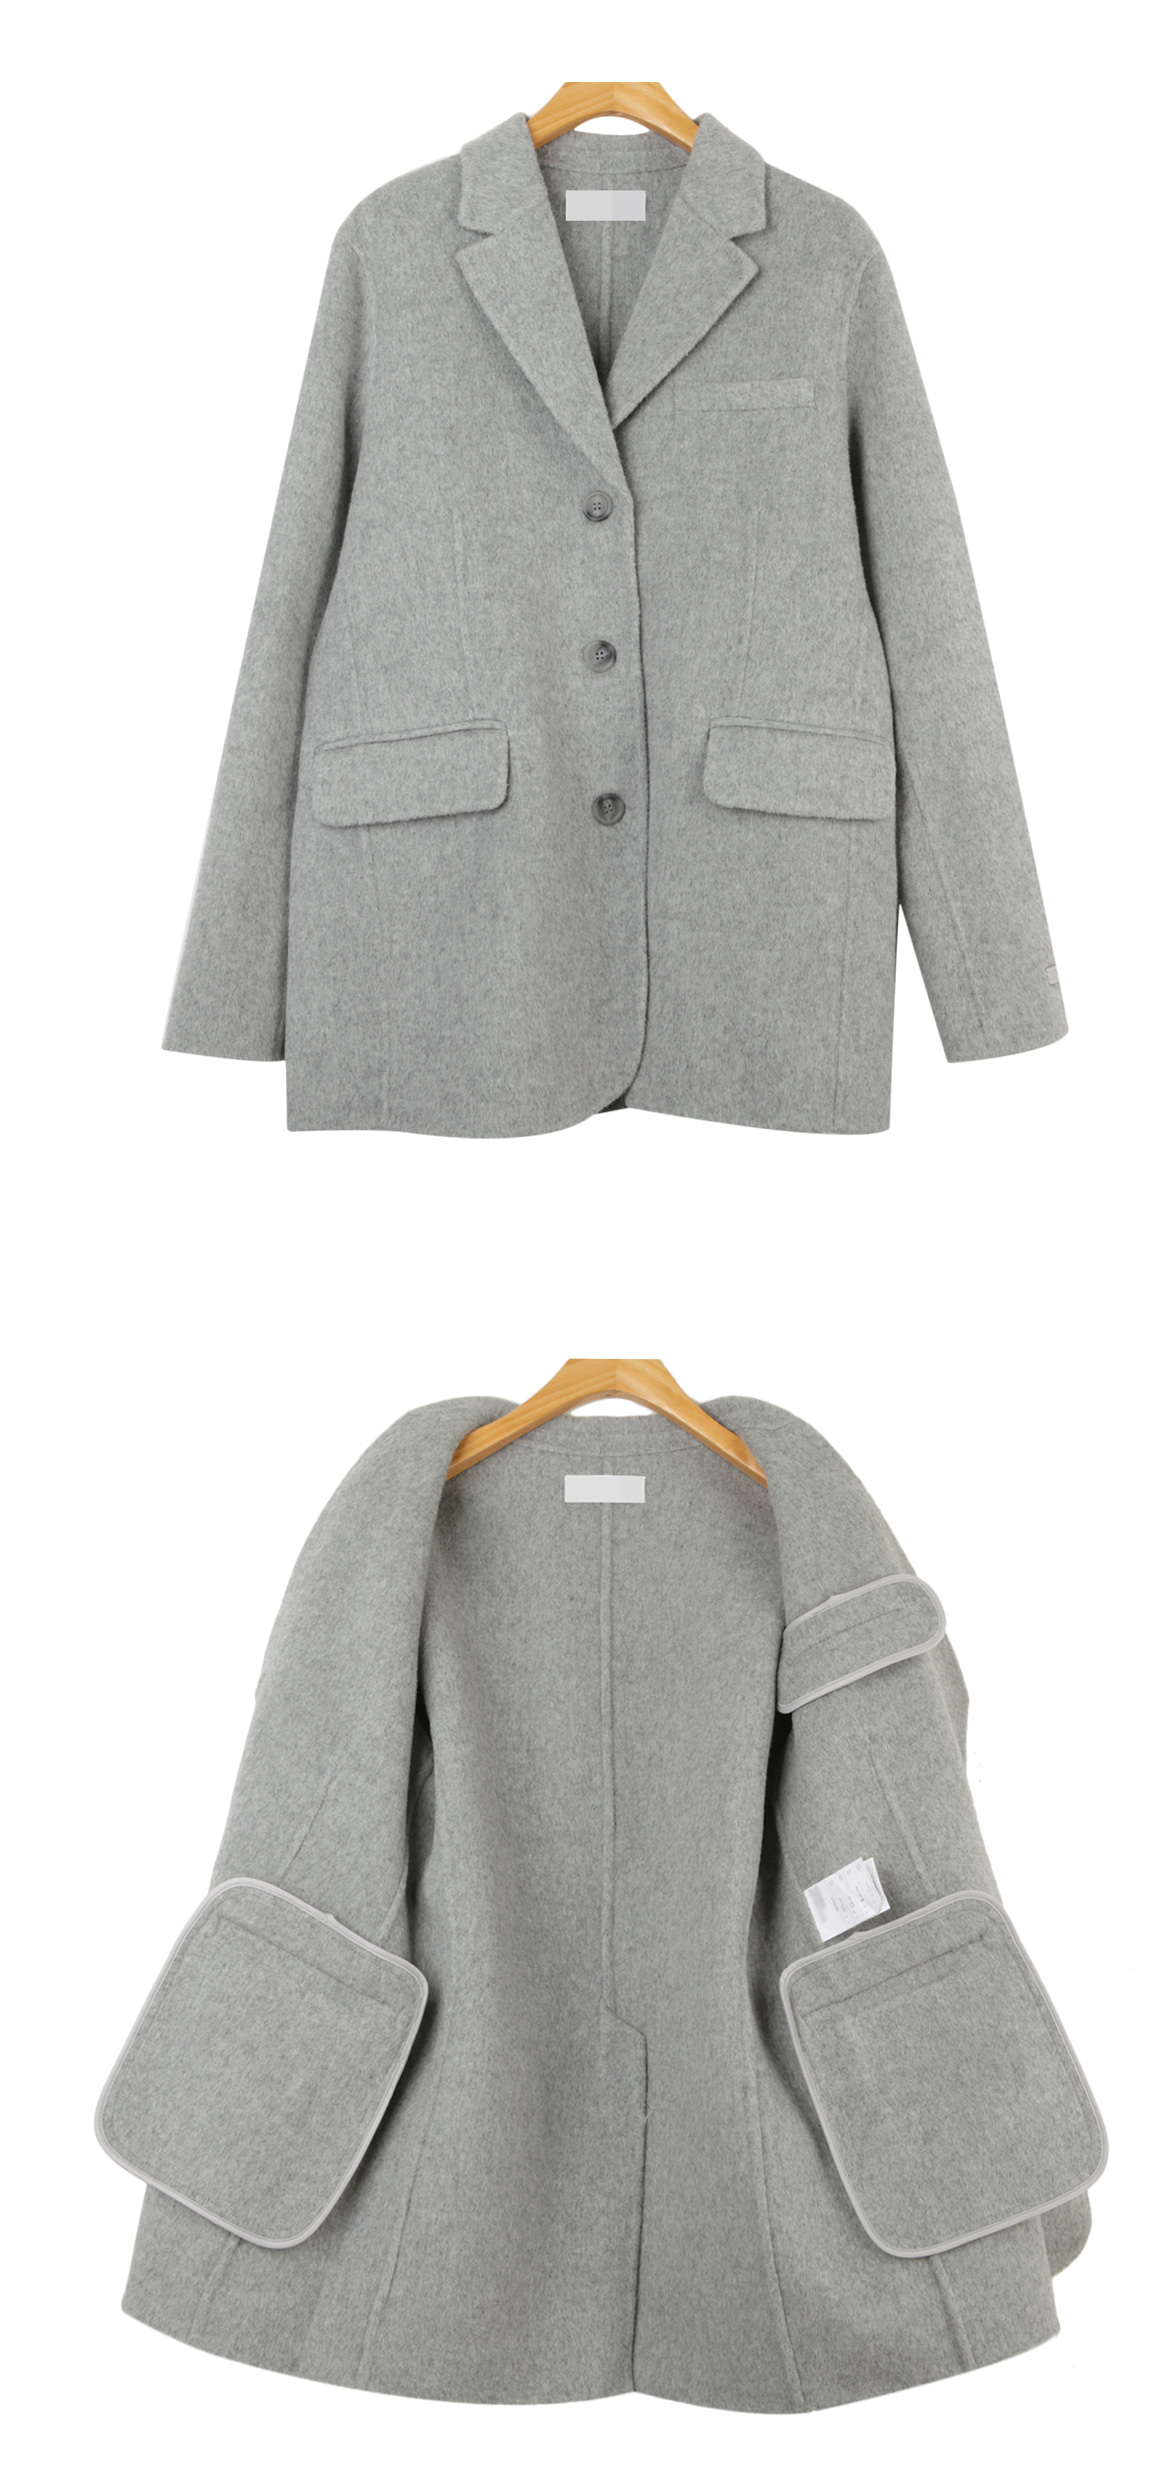 Plain handmade jacket